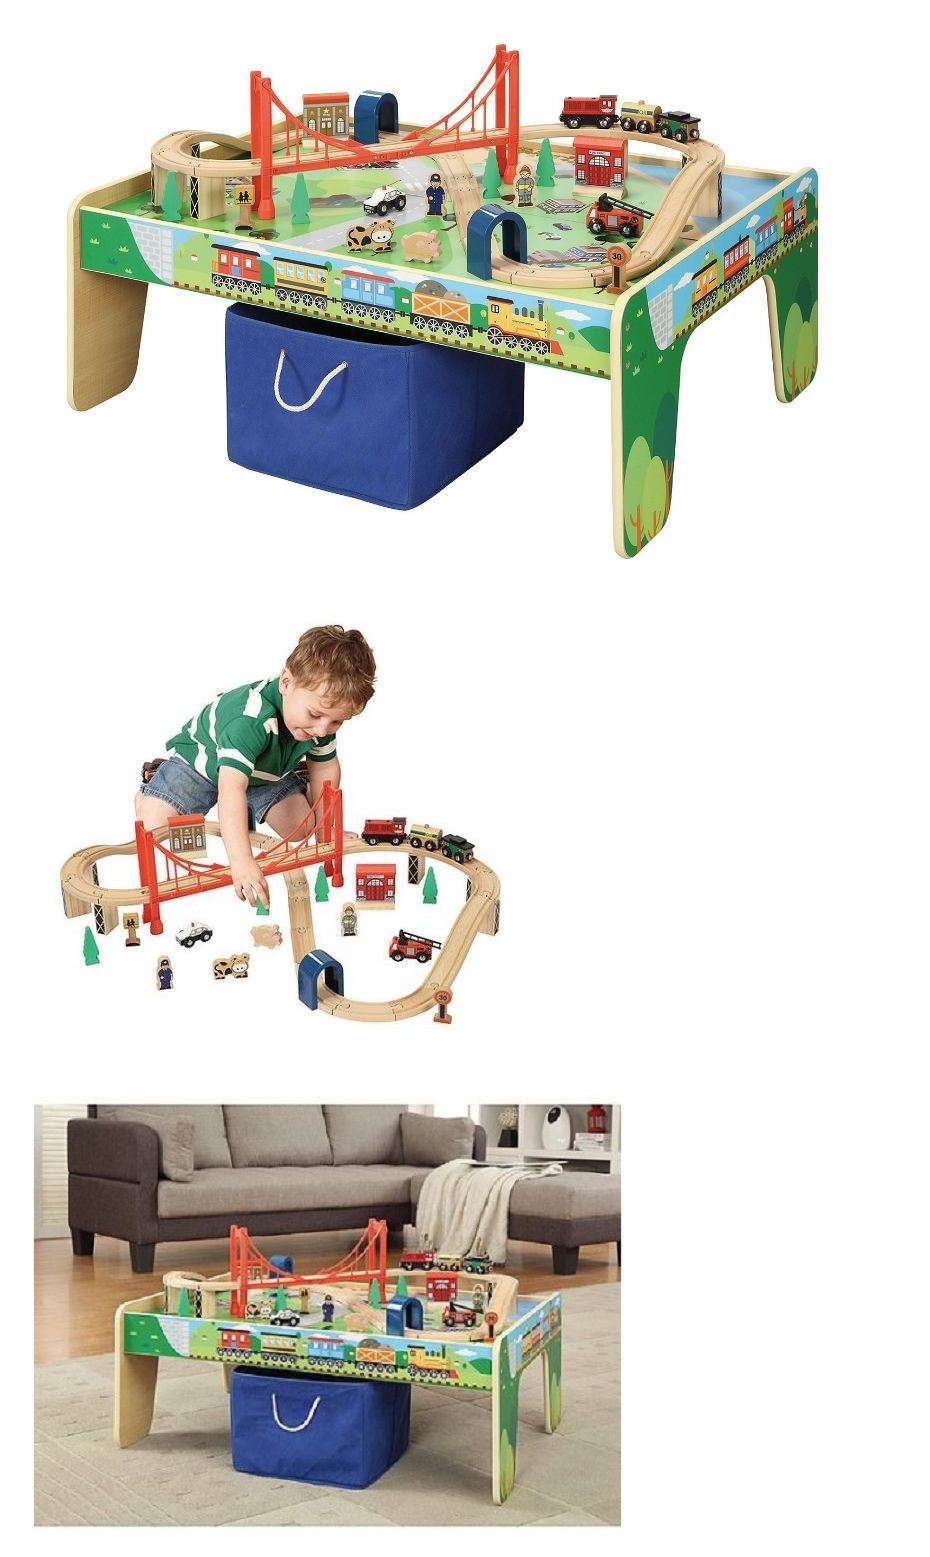 Train Sets 113519 Thomas Train Table Set For Toddlers Young Children Kids Wooden Play Set  sc 1 st  Pinterest & Train Sets 113519: Thomas Train Table Set For Toddlers Young ...